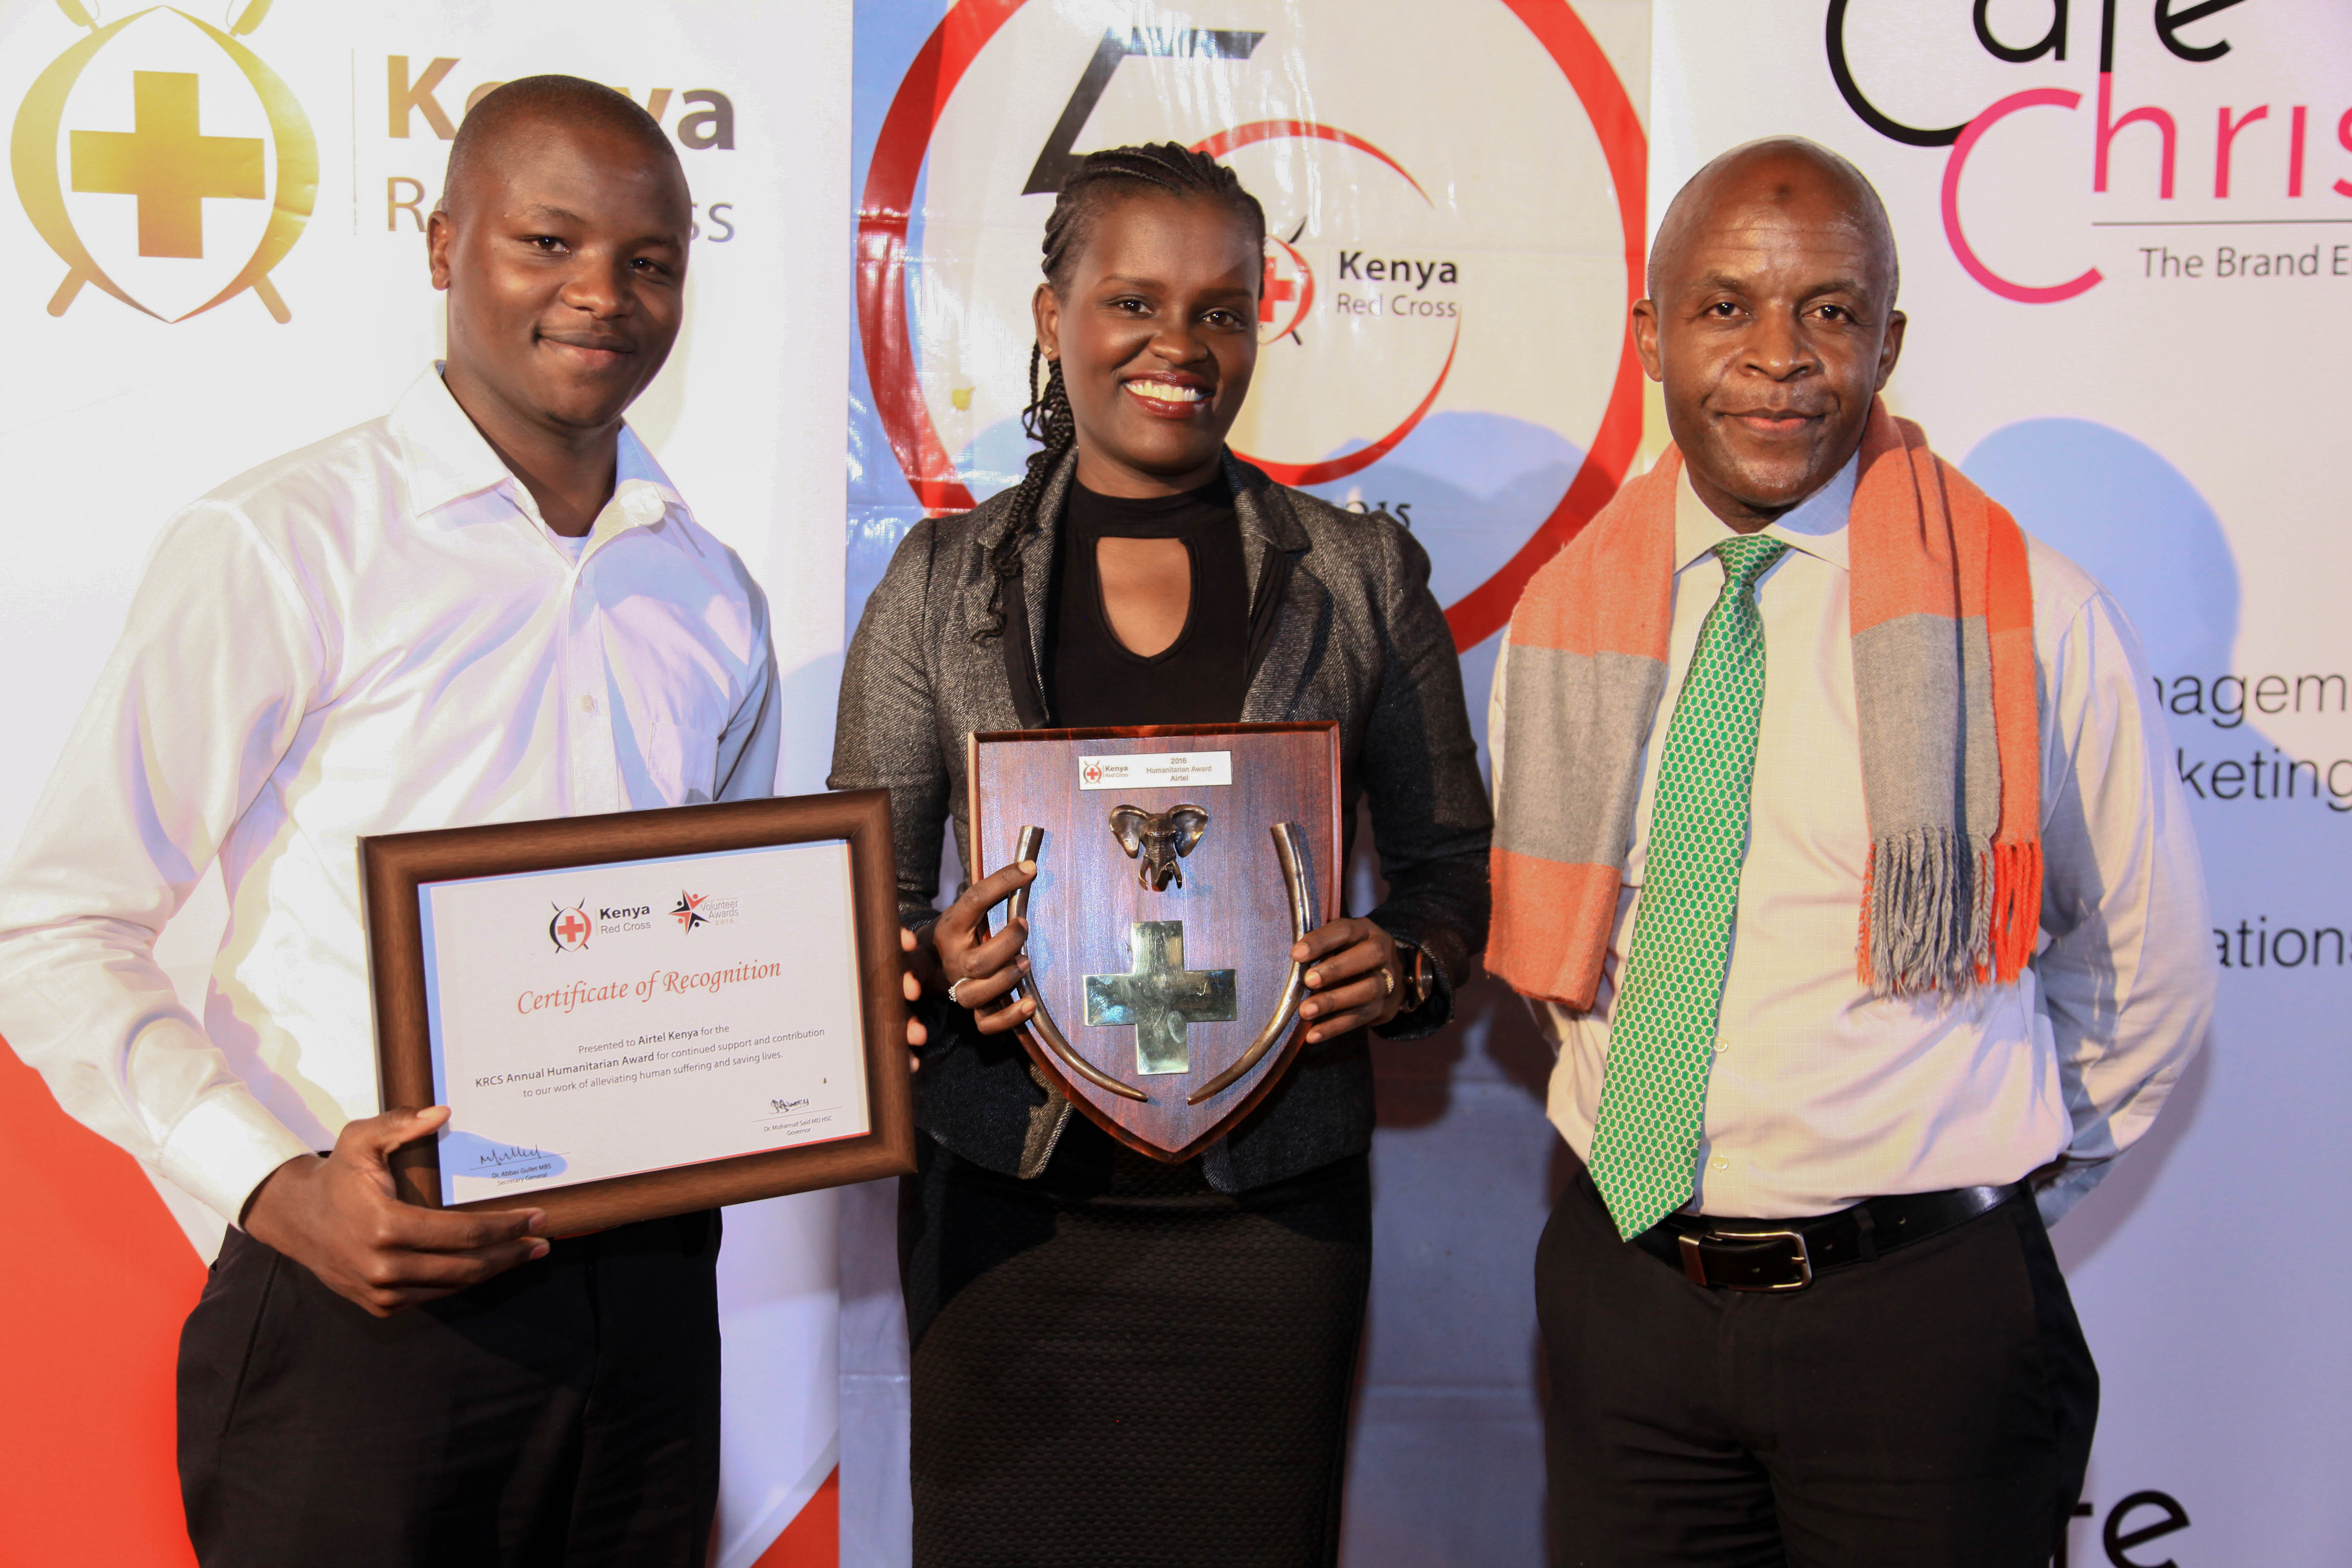 From Left- Airtel Kenya's Communications Executive Jesse Kisenya and CSR Manager Aigeldel Kirumburu receive the Kenya Red Cross Annual Humanitarian Award from IFRC Gender Coodinator Nkhoma Potipher.